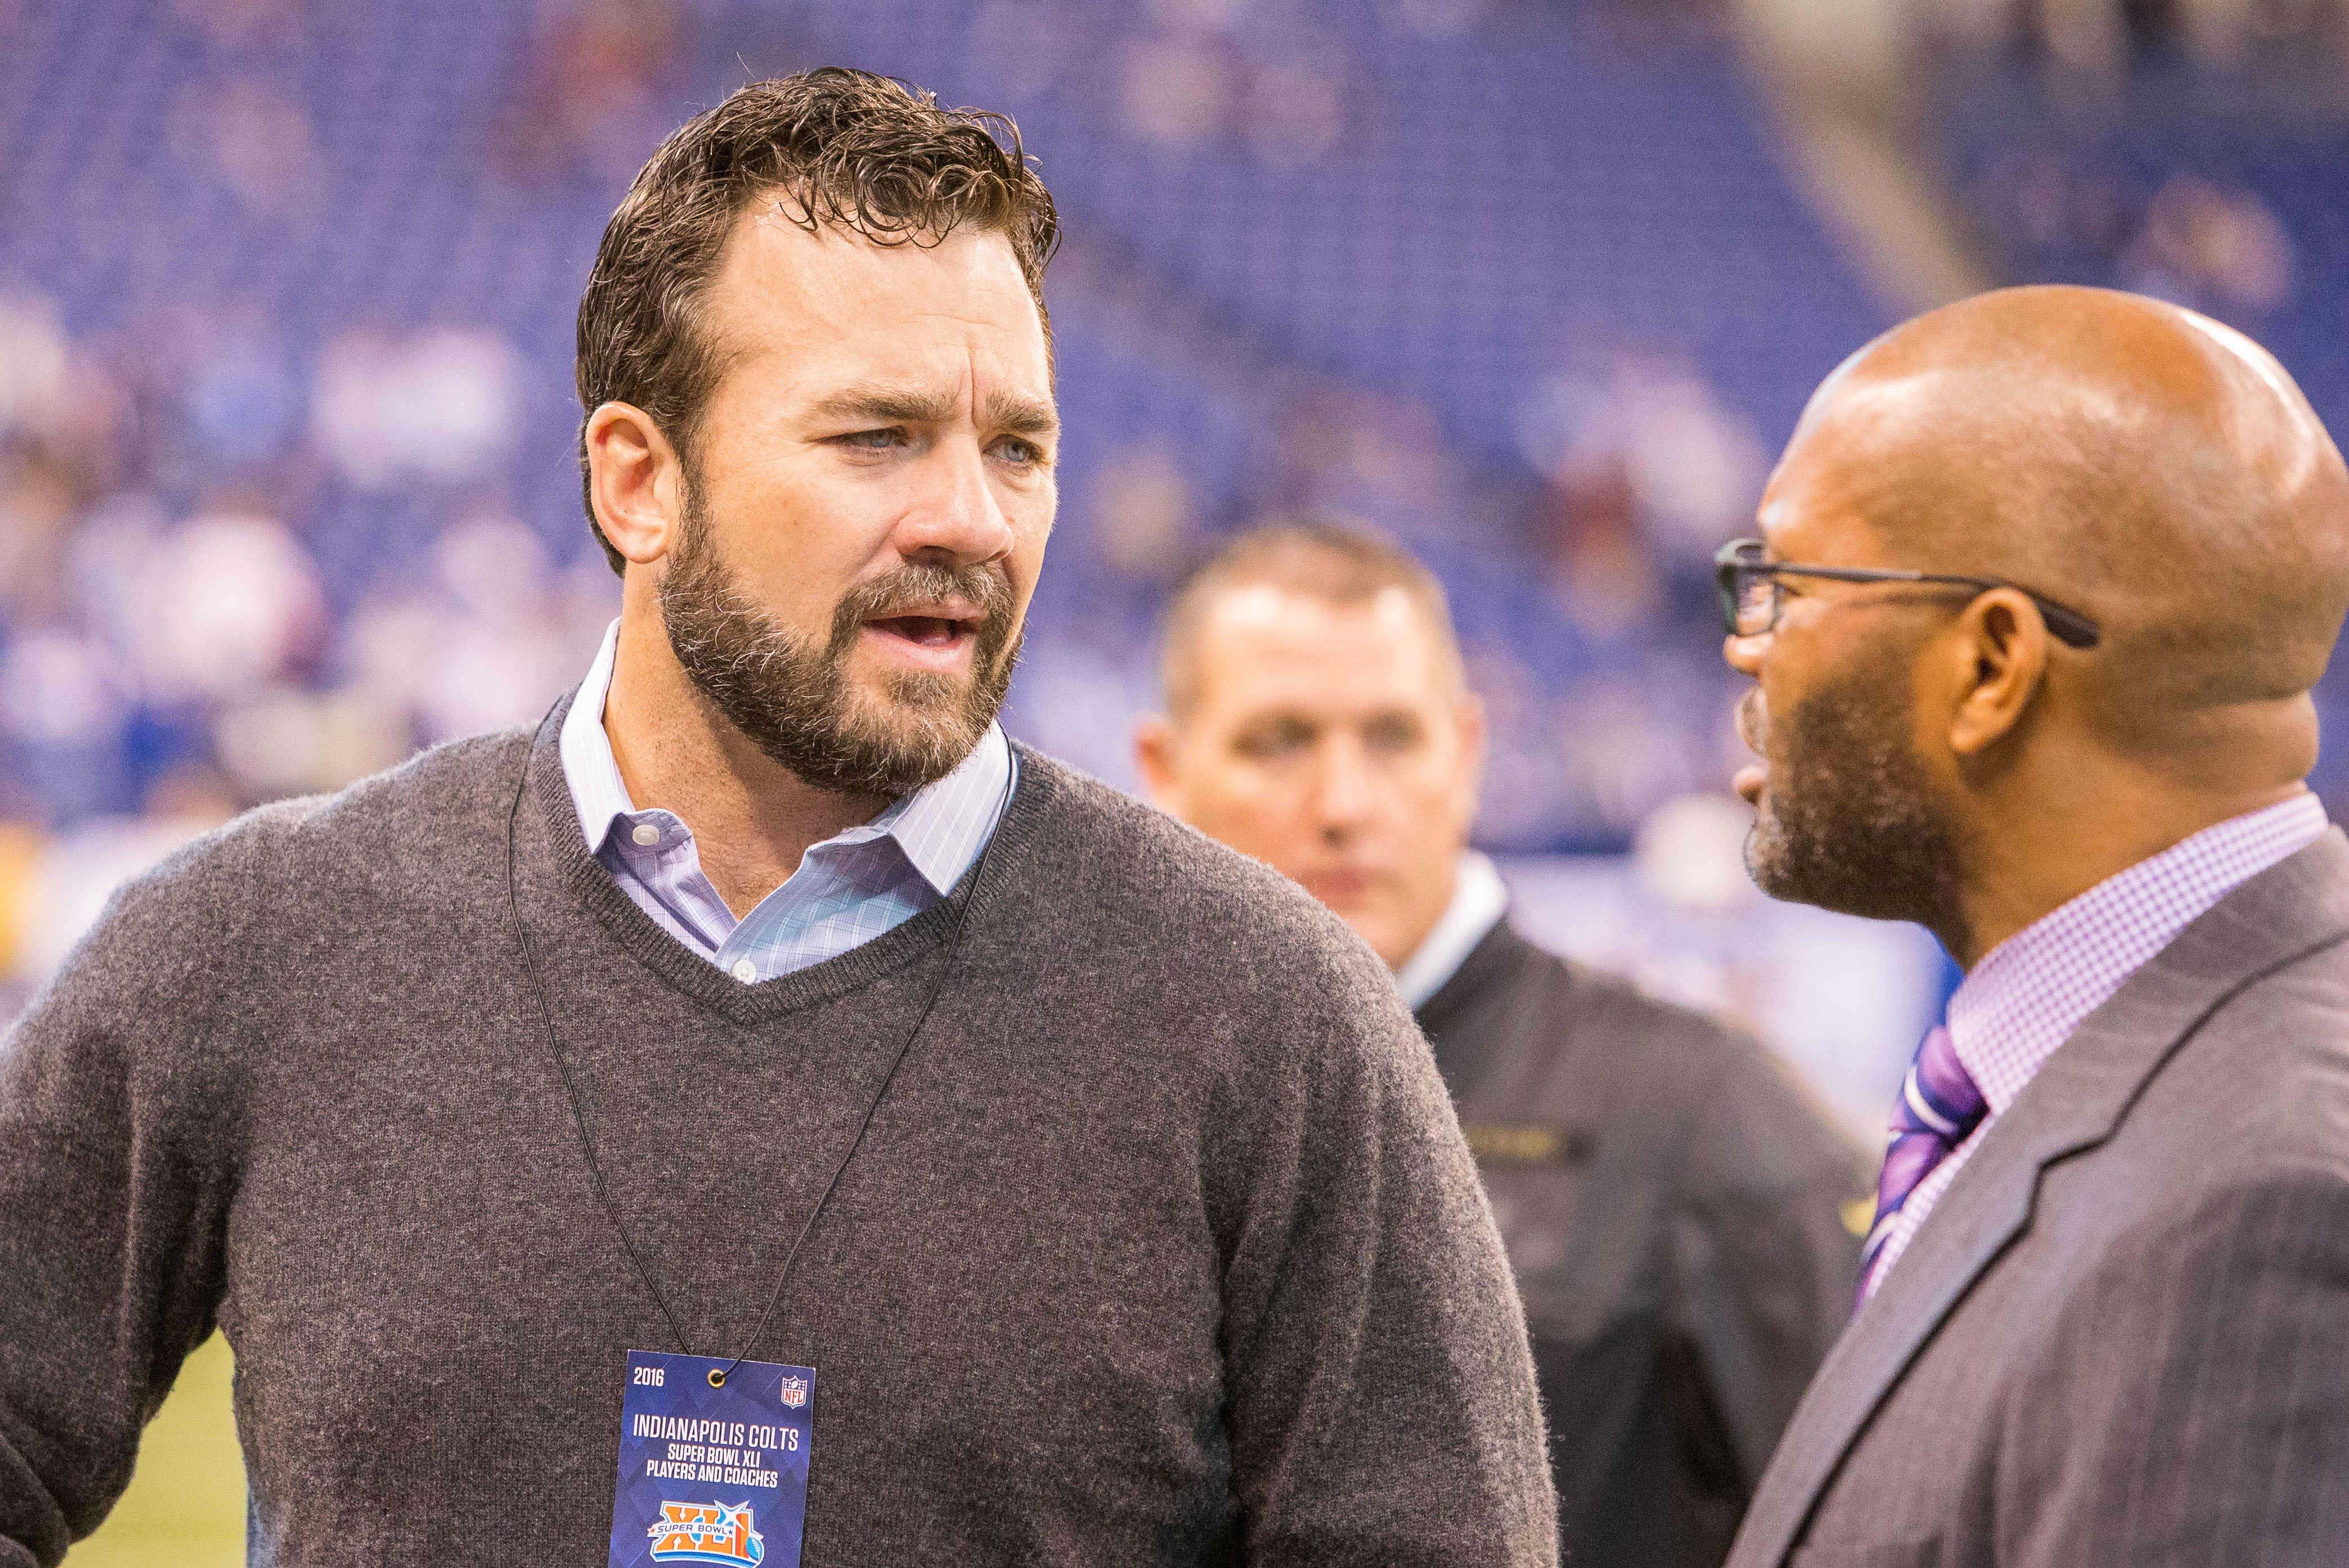 Nov 20, 2016; Indianapolis, IN, USA; Indianapolis Colts former center Jeff Saturday talks with former teammates on the sideline before the game between the Indianapolis Colts and the Tennessee Titans at Lucas Oil Stadium. Mandatory Credit: Trevor Ruszkowski-USA TODAY Sports ORG XMIT: USATSI-268526 ORIG FILE ID: 20161120_jla_rb2_031.jpg